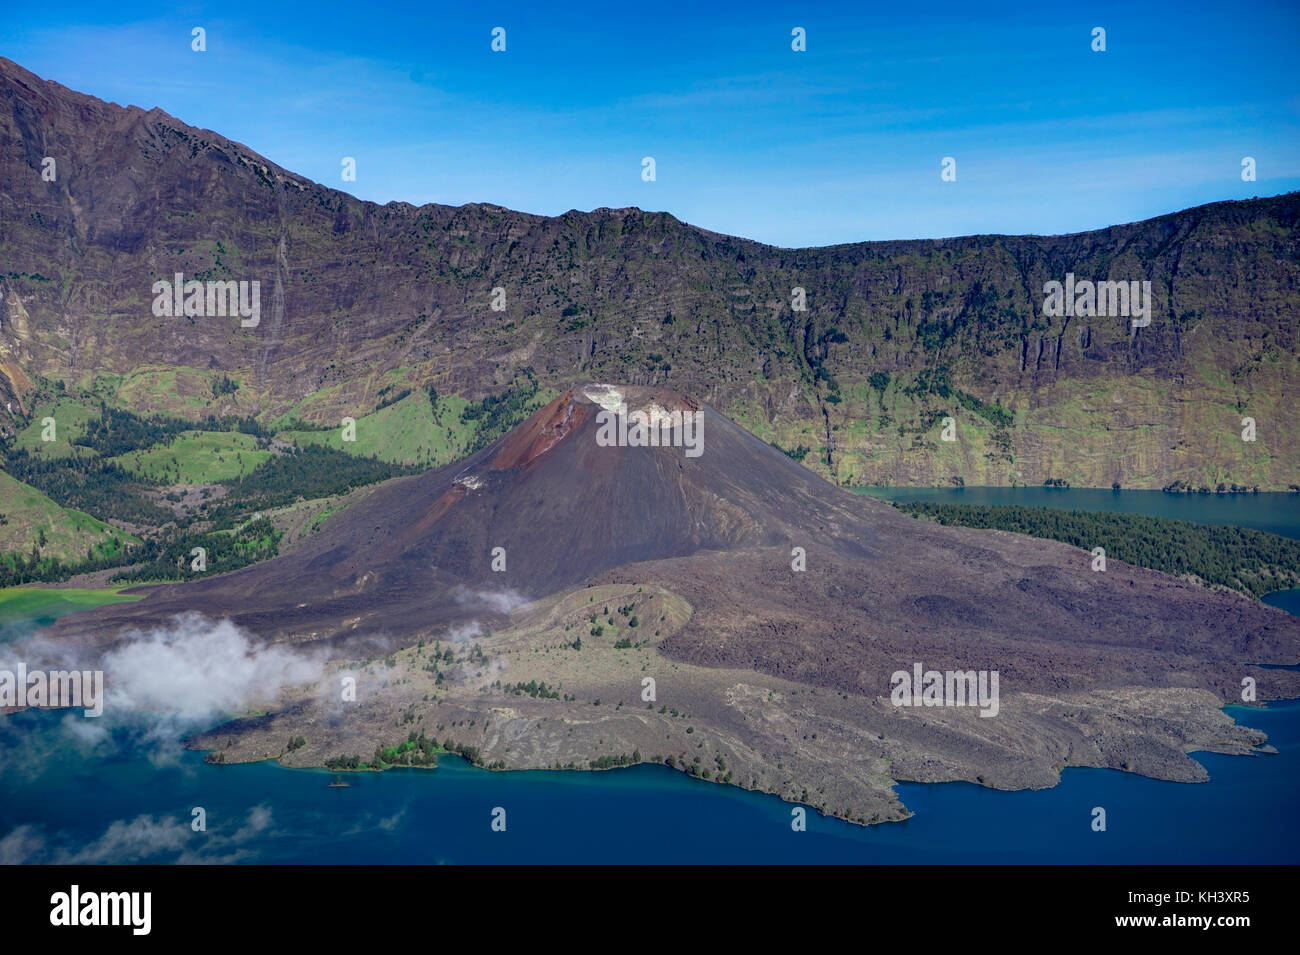 Volcano crater lake of Mount Rinjani Lombok Indonesia - Stock Image